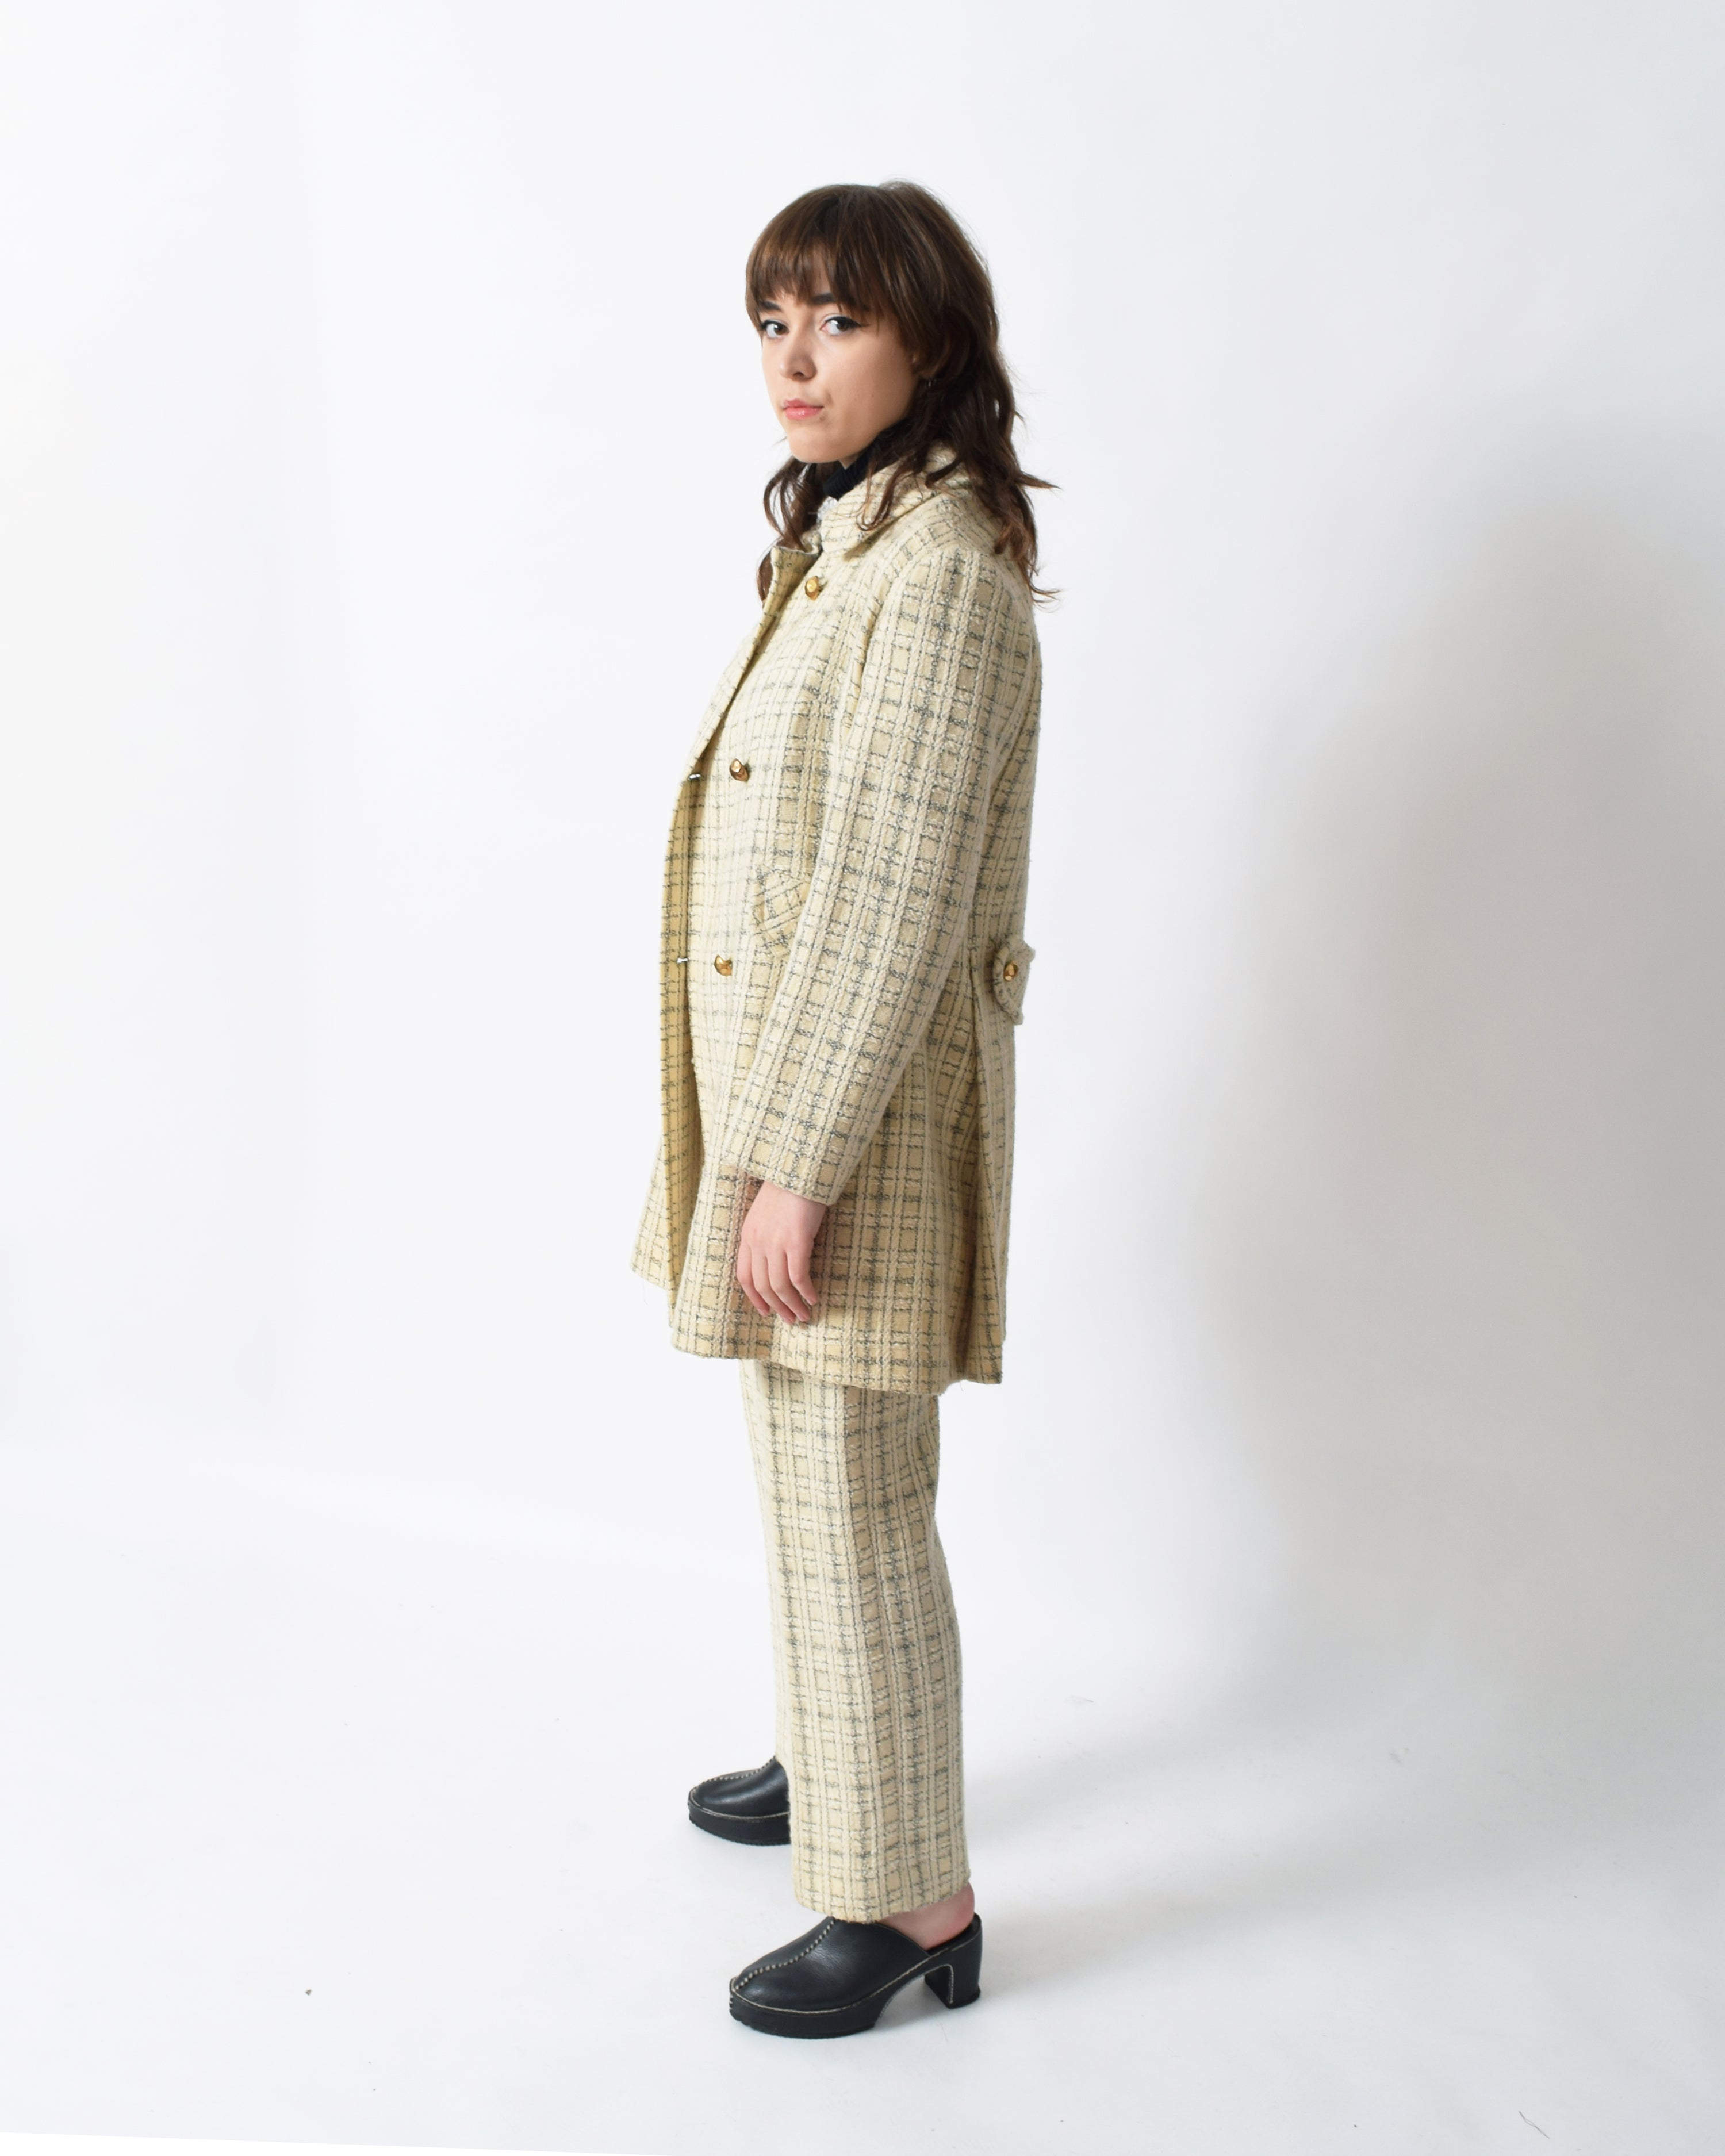 Vintage 1960s Plaid Wool Pants Suit